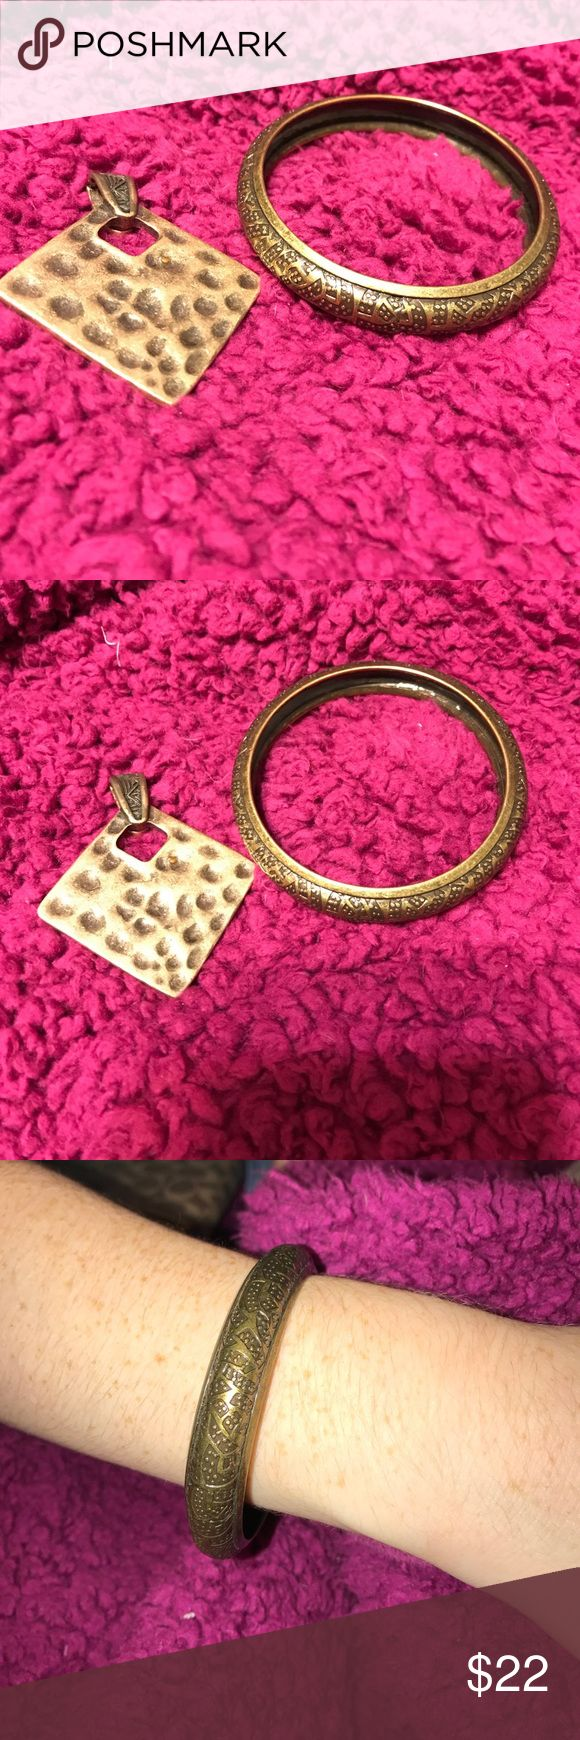 """Premier Designs Bracelet and Magnetic Clip Always great jewelry from Premier Designs! This is a bangle Bracelet that looks """"antiqued"""" or bronze toned. The clip is a magnetic necklace clip, hooks to your chain or rope necklace... changes your look entirely! Premier Designs Jewelry"""